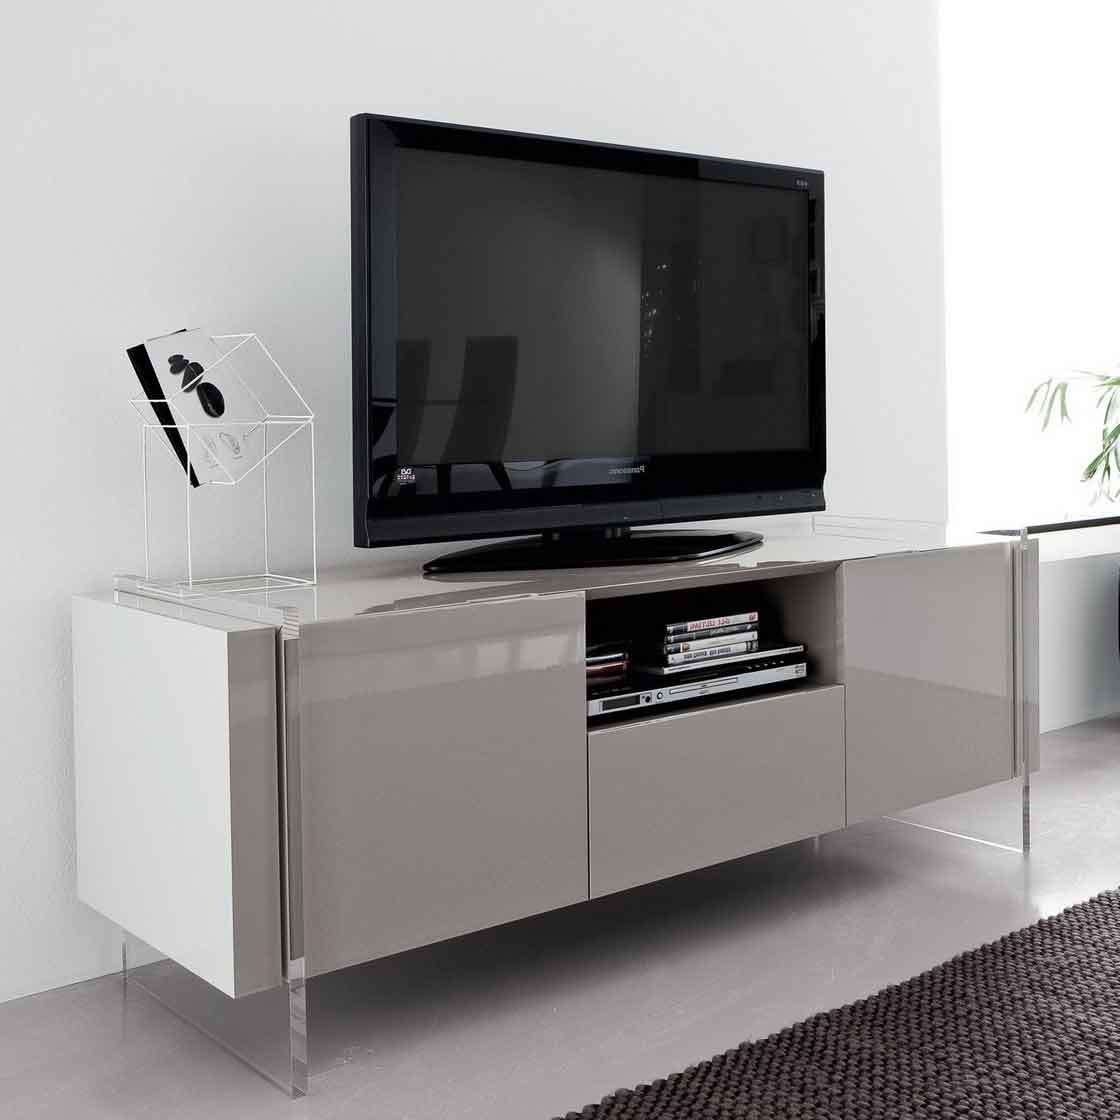 Innovative Tv Stand For Home Entertainment Room With Three Throughout Acrylic Tv Stands (View 7 of 15)